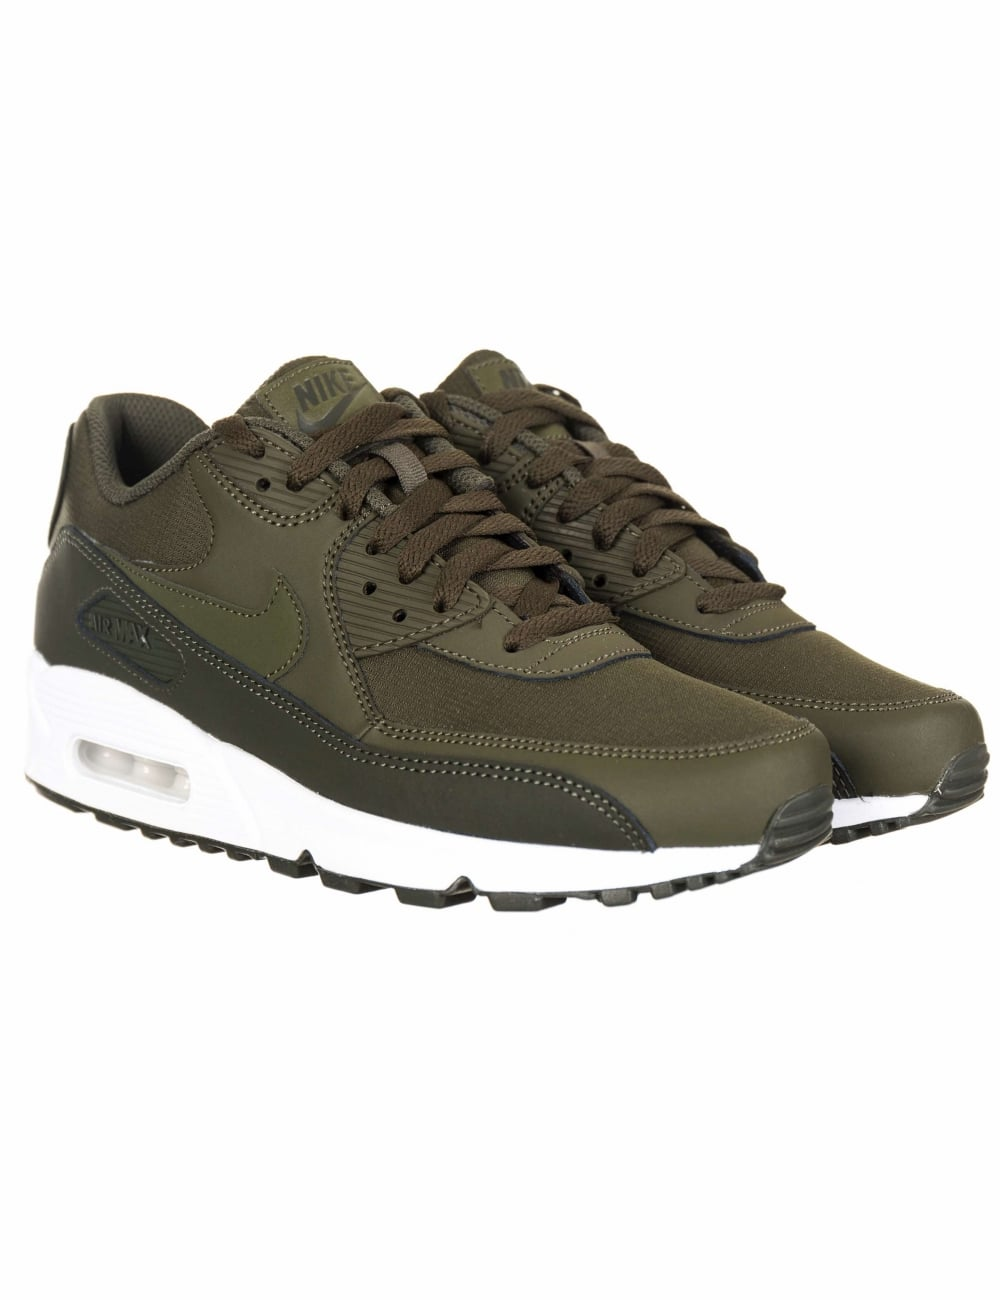 5316bf849914 Nike Air Max 90 Essential Shoes - Sequoia Cargo Khaki - Trainers ...